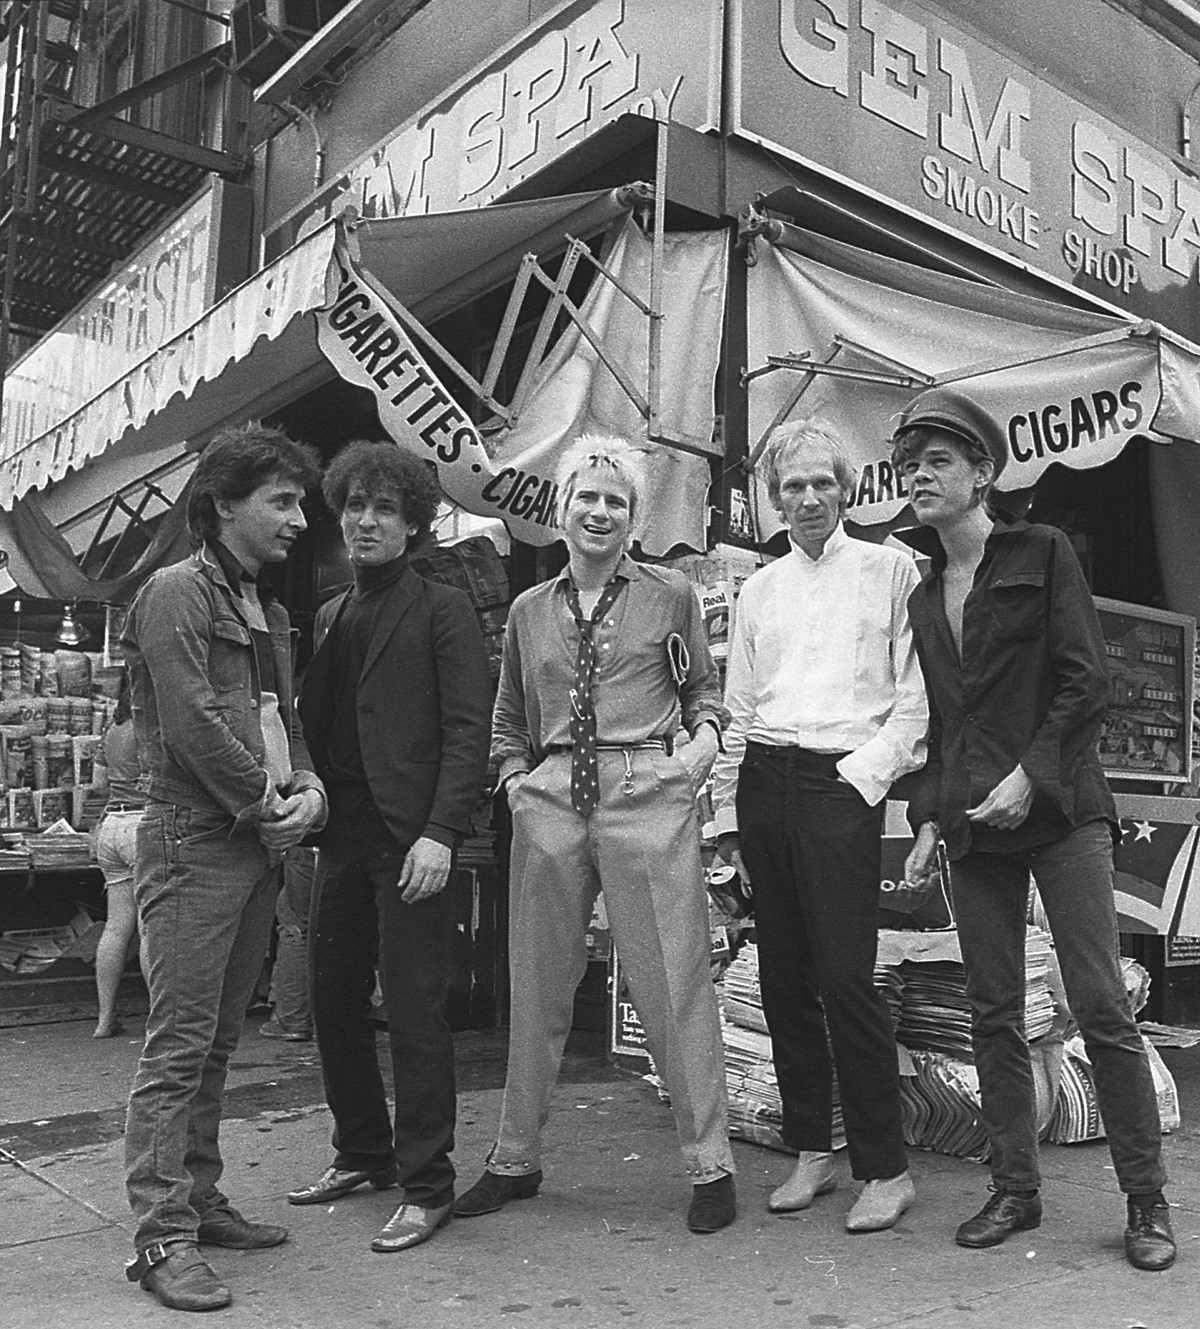 A Tale of Drugs the New York Dolls and Punk Rock Stranded in the Jungle Fashion Jerry Nolans Wild Ride